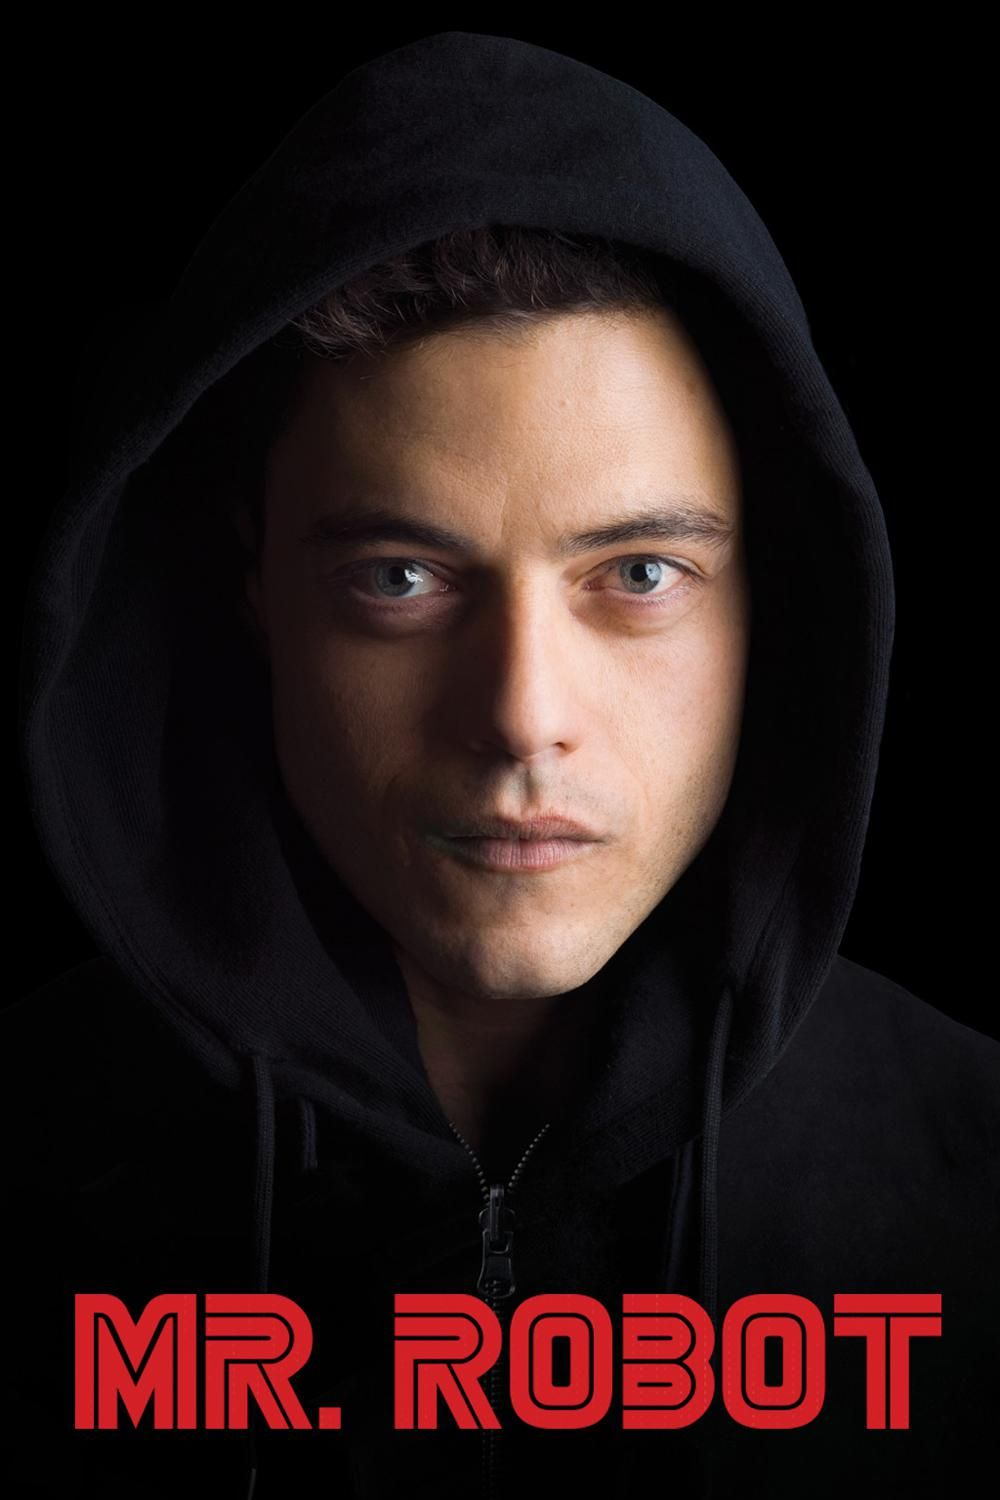 mr. robot burning series